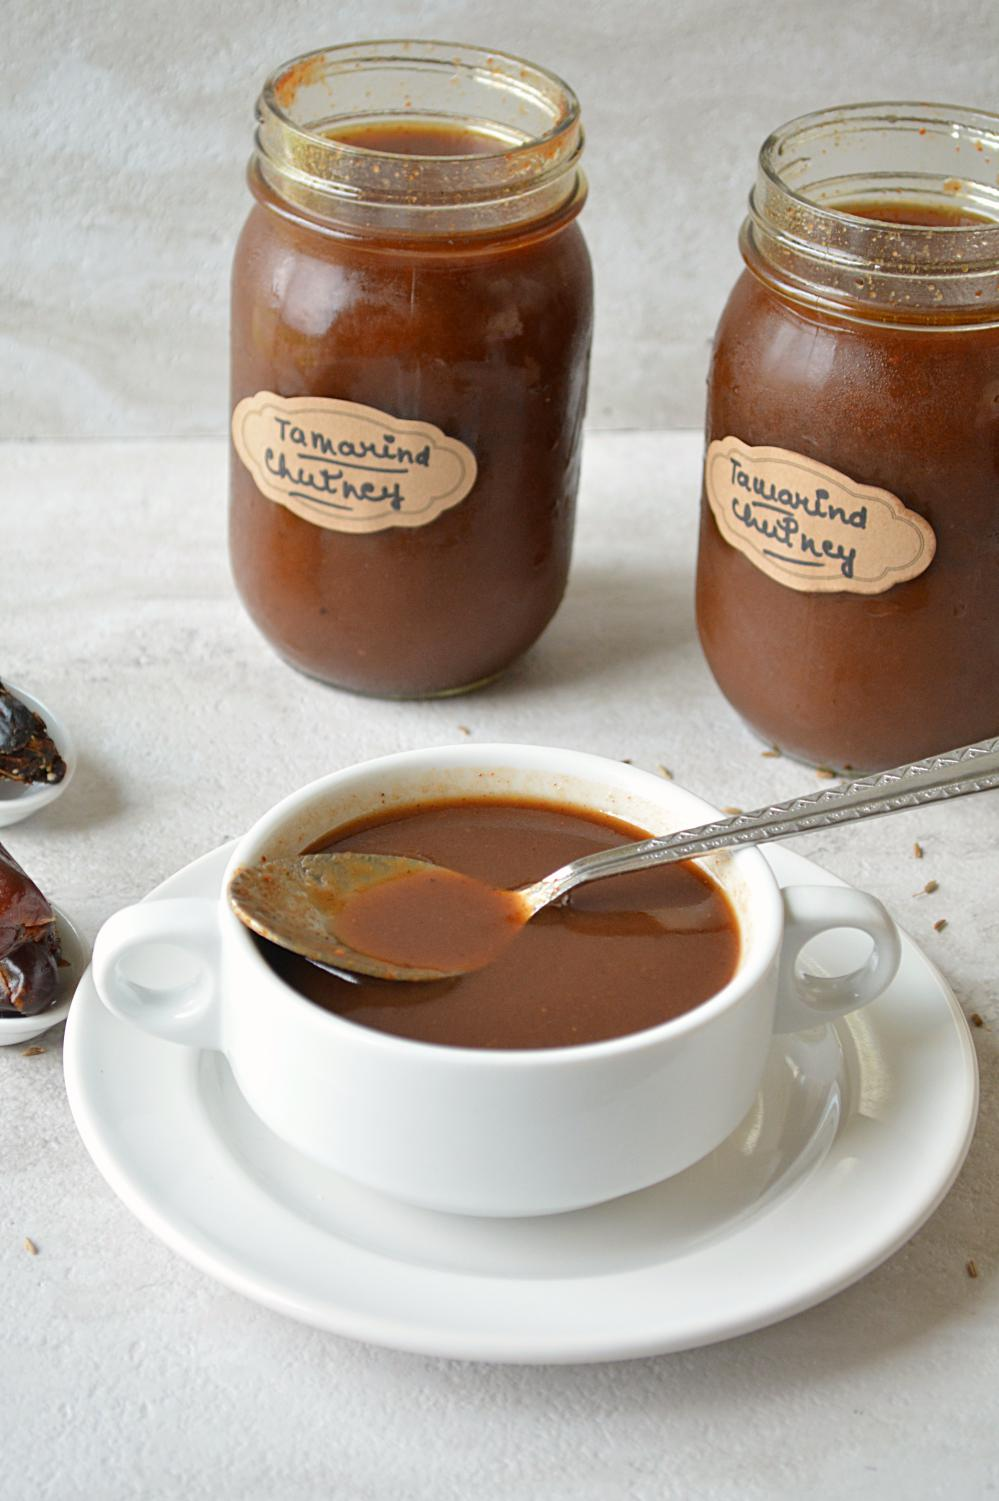 Tamarind and Date Chutney